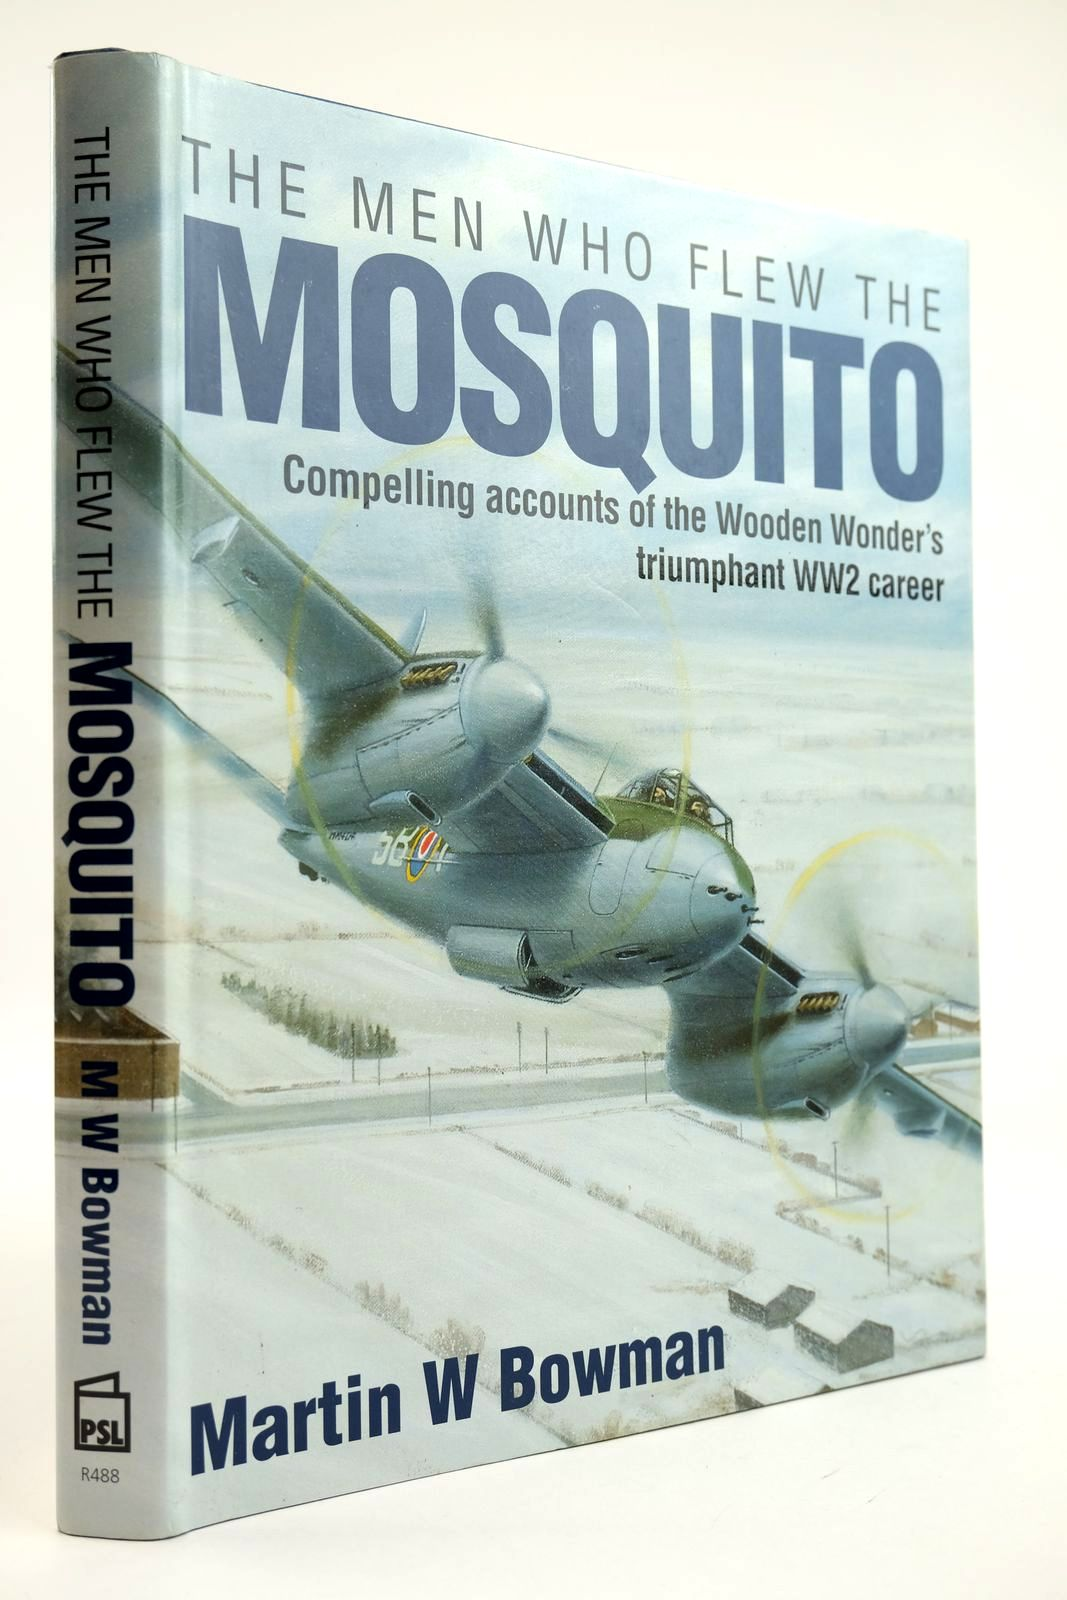 Photo of THE MEN WHO FLEW THE MOSQUITO written by Bowman, Martin W. published by Patrick Stephens Limited (STOCK CODE: 2132162)  for sale by Stella & Rose's Books